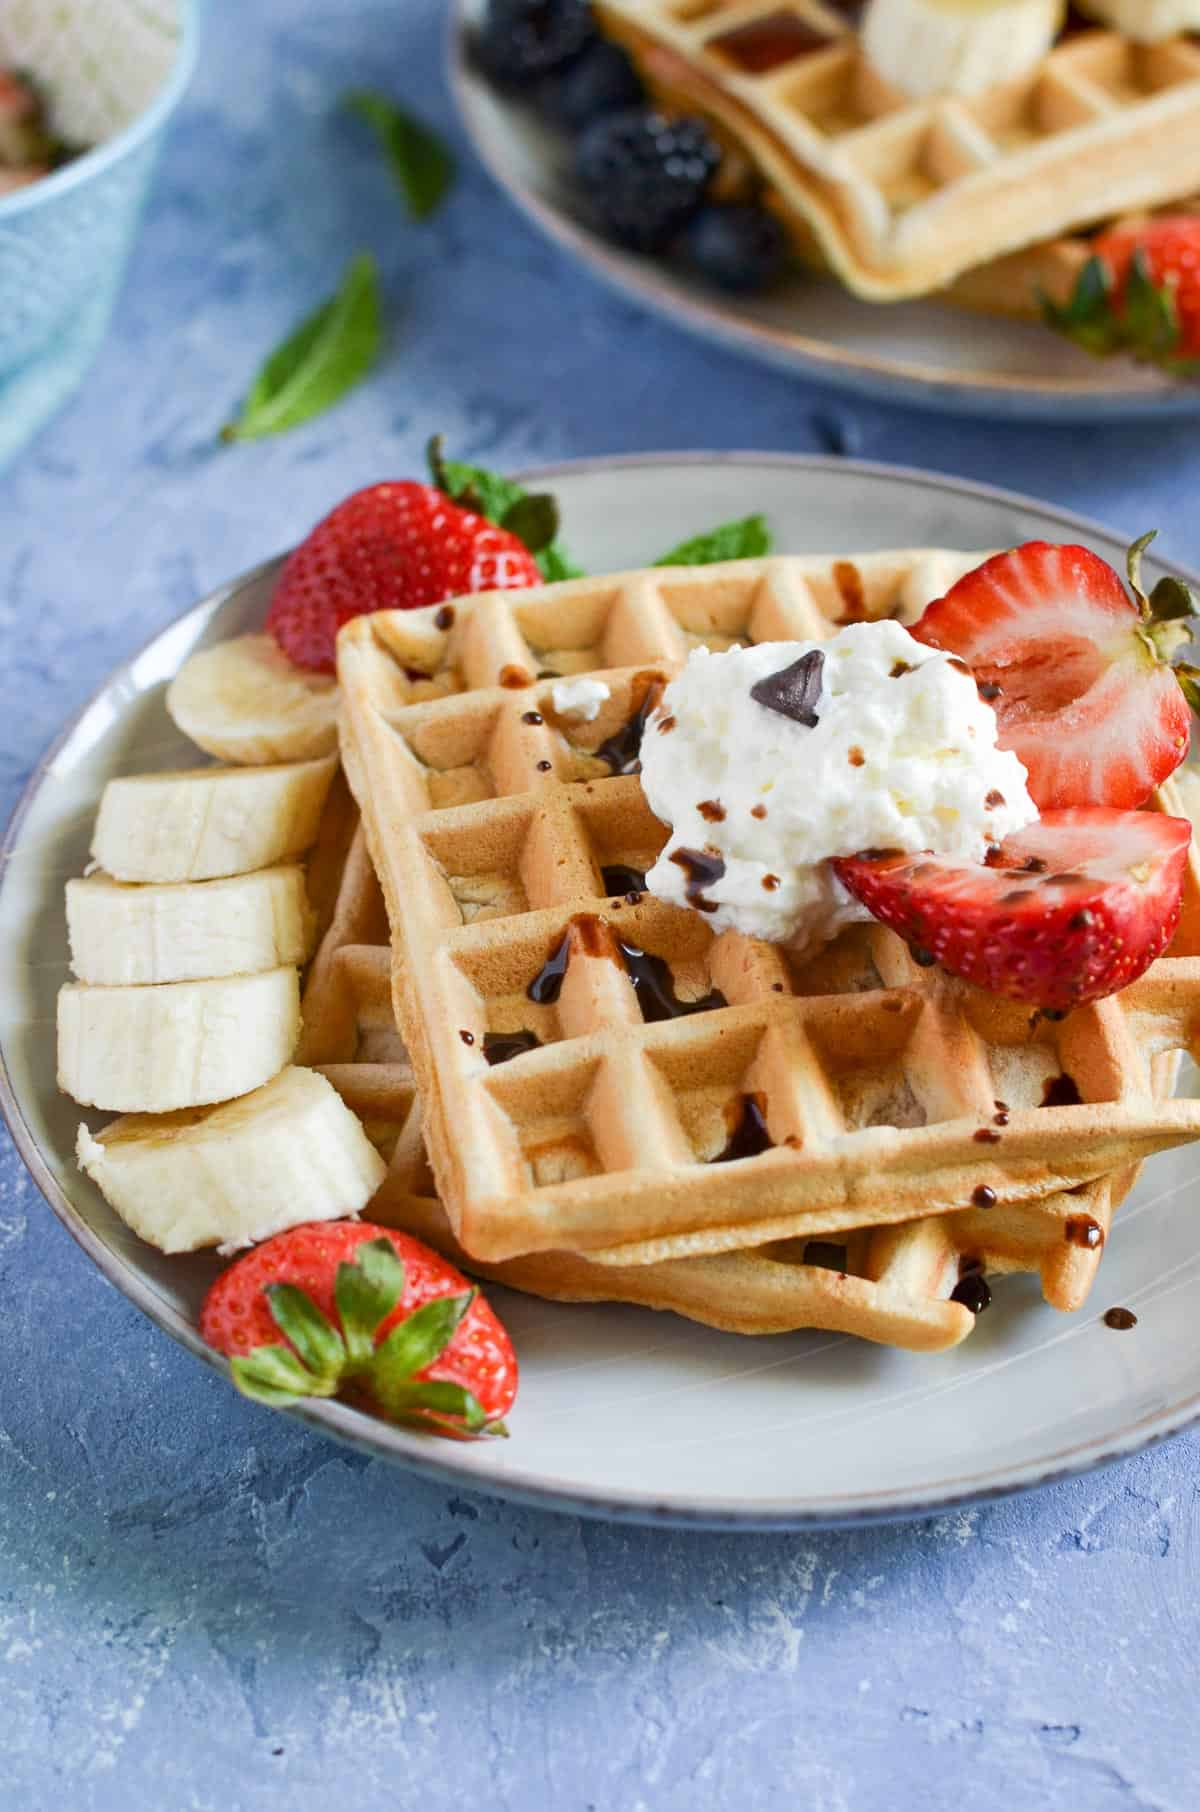 close up of waffles served with whipped cream, banana, berries and chocolate syrup.